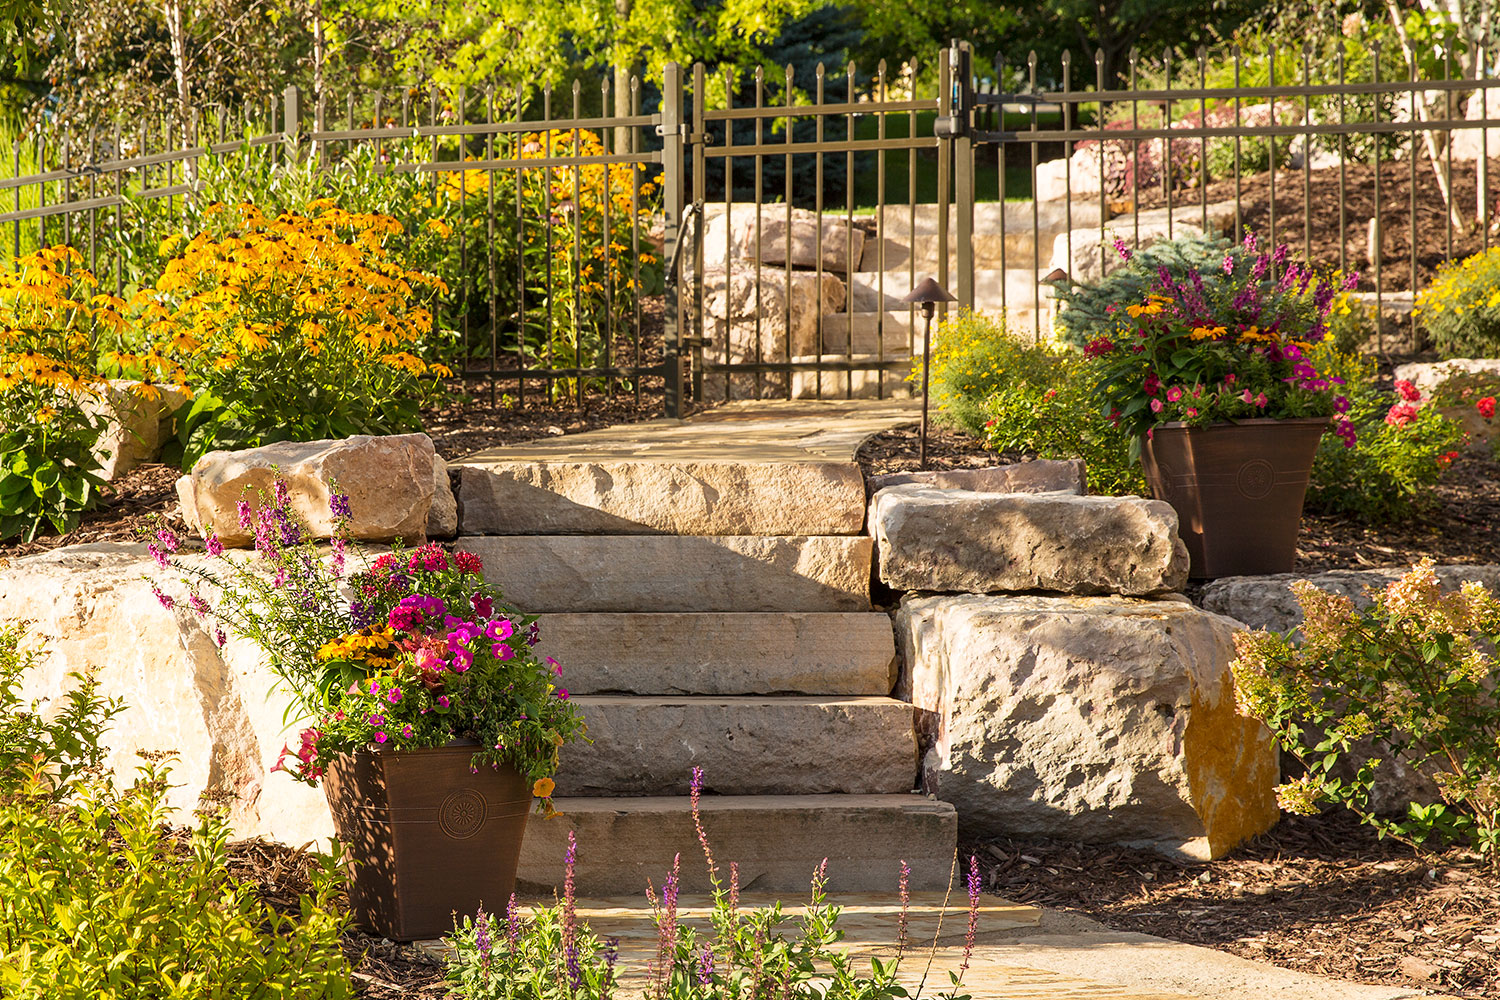 Stone steps and walkways provide safe, easy access to the backyard swimming pool